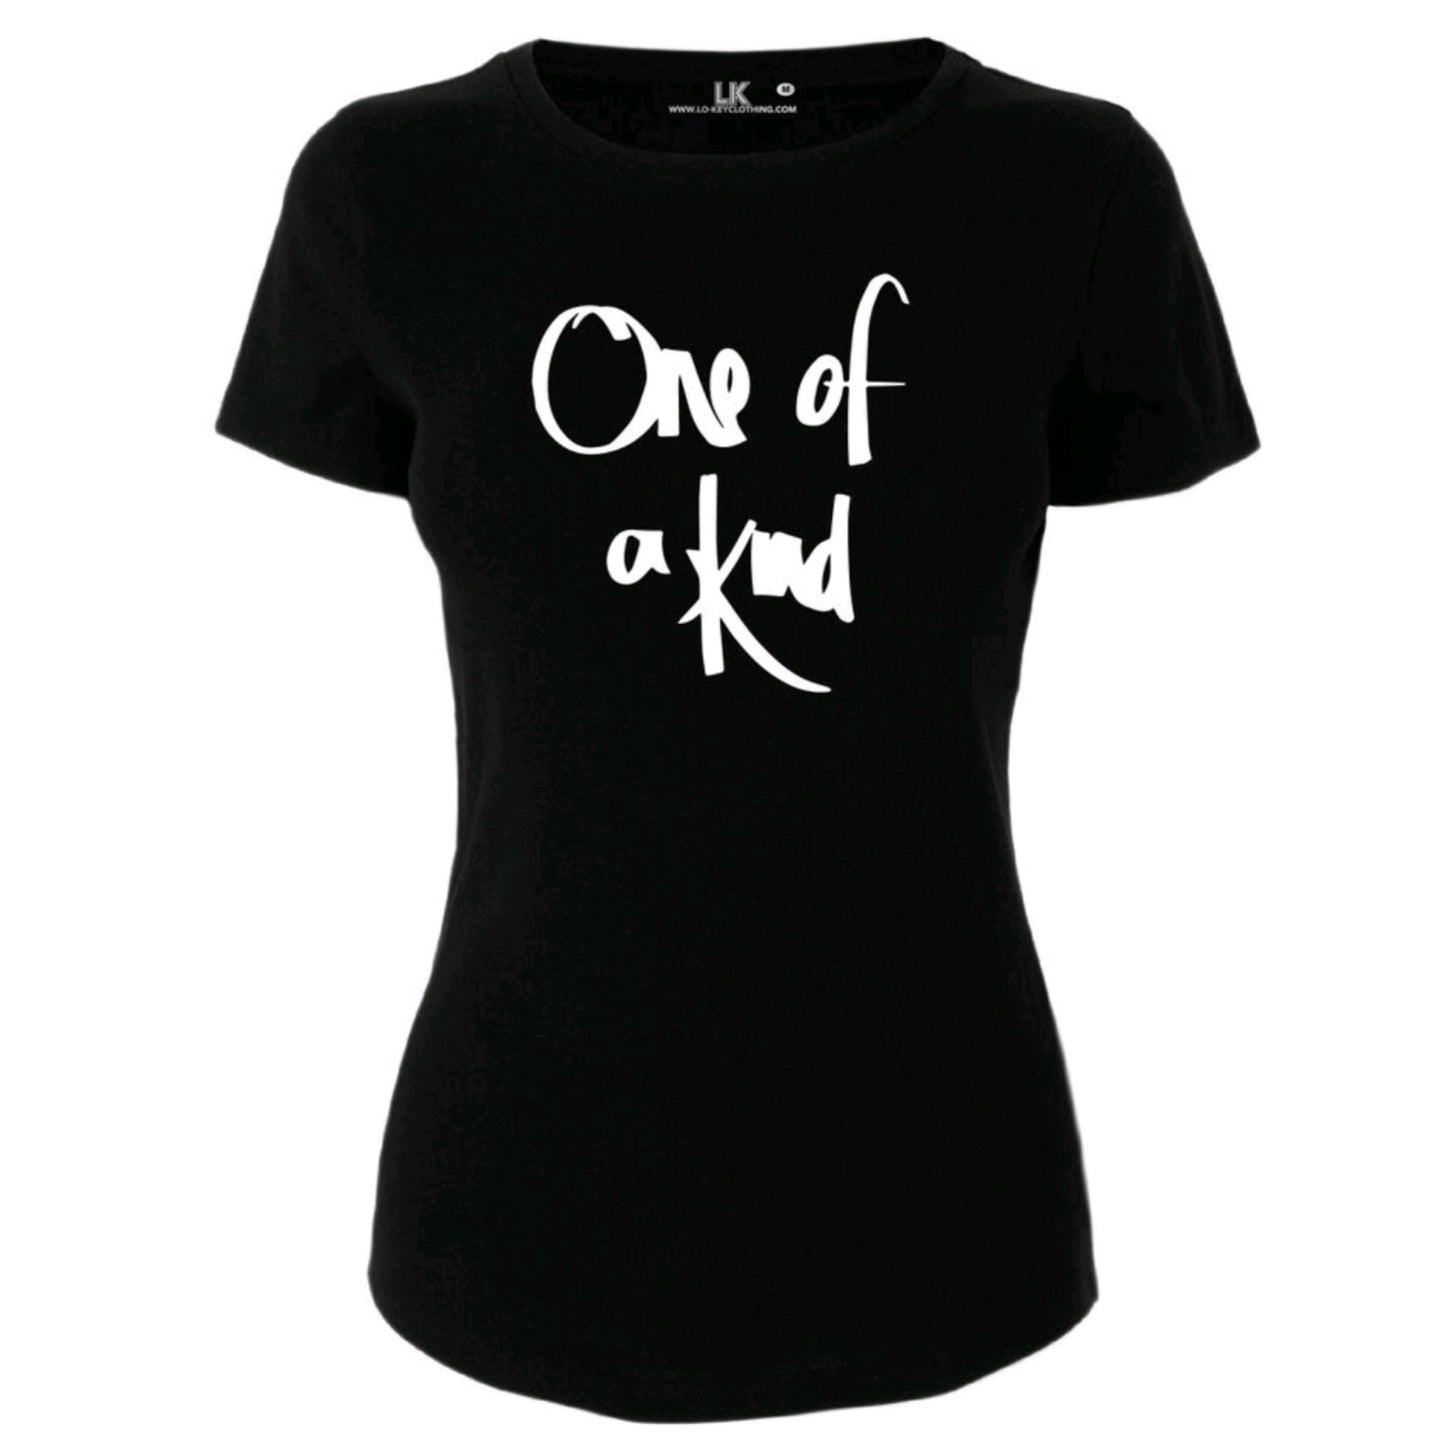 Women's one of a kind tee